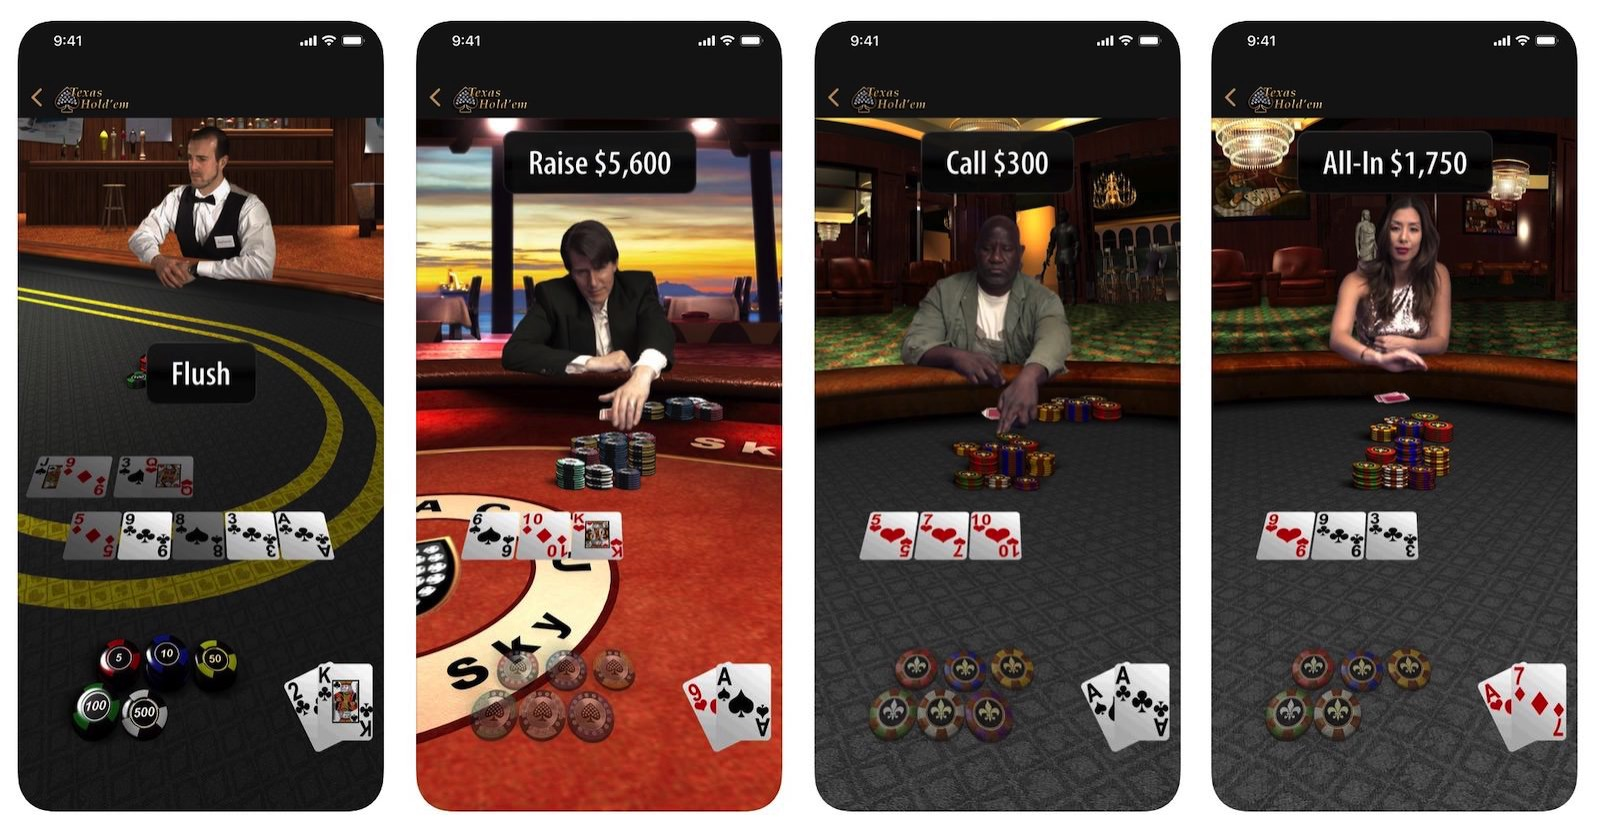 Texas Holdem Apple poker game